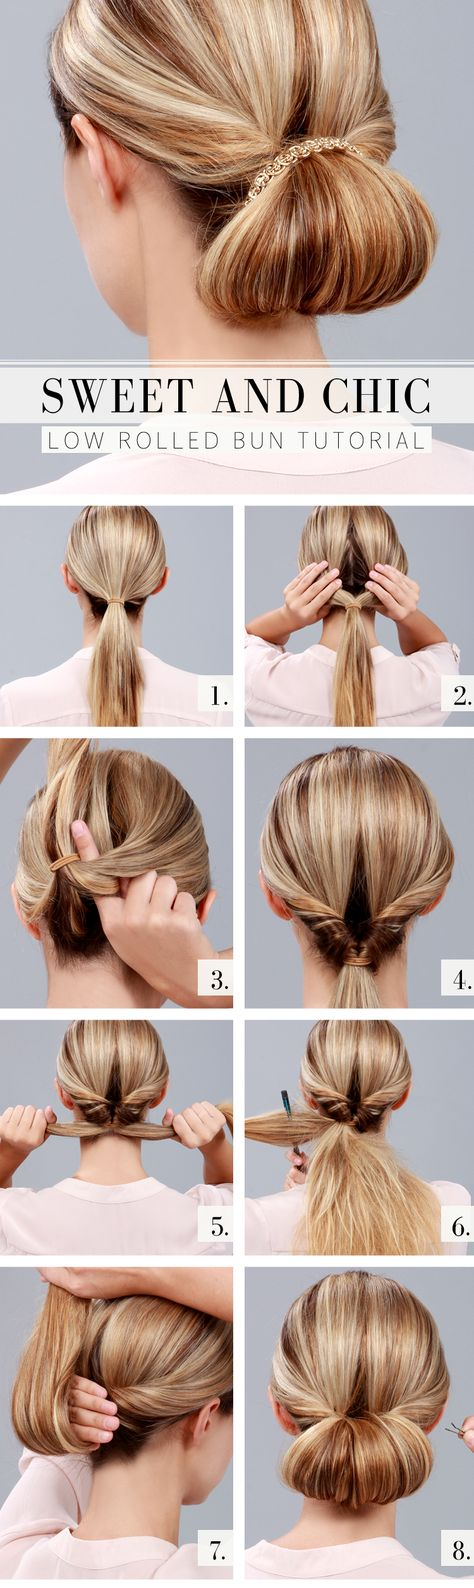 DIY LuLu*s Chic Low Rolled Bun Tutorial - LuLus